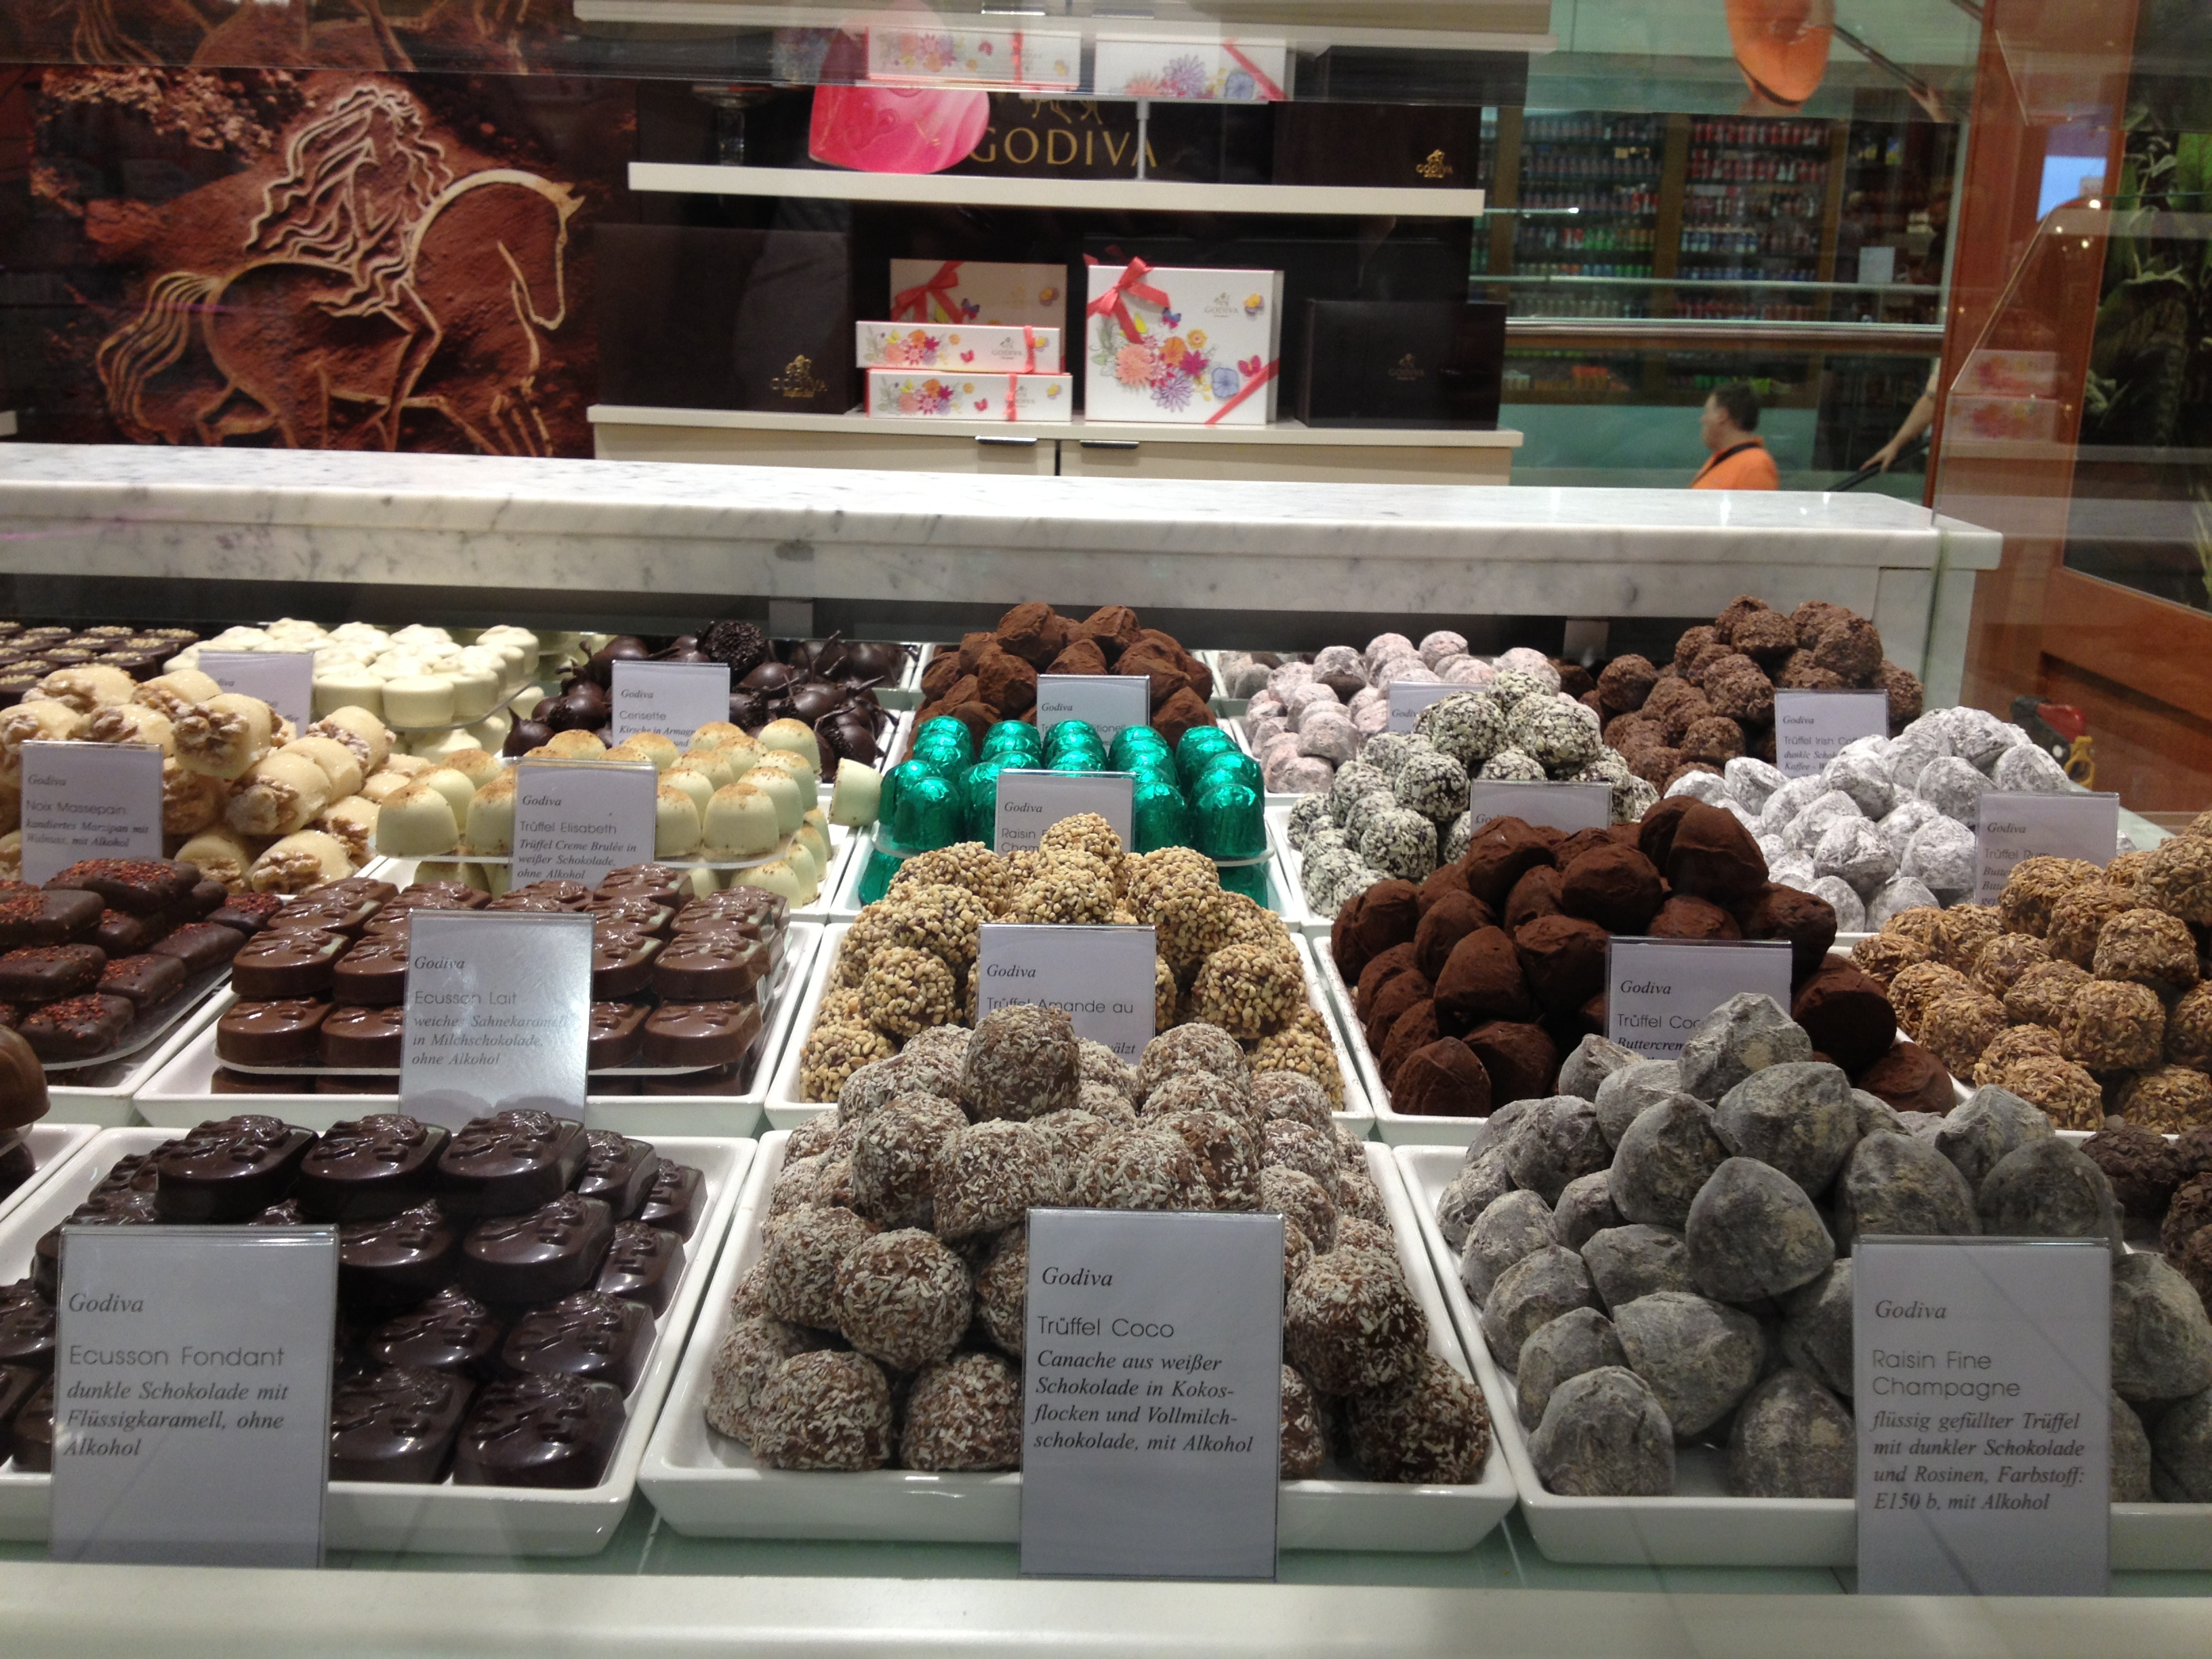 Delicious choclate bar at KaDeWe - Kurfürstendamm. They just tasted amazing.